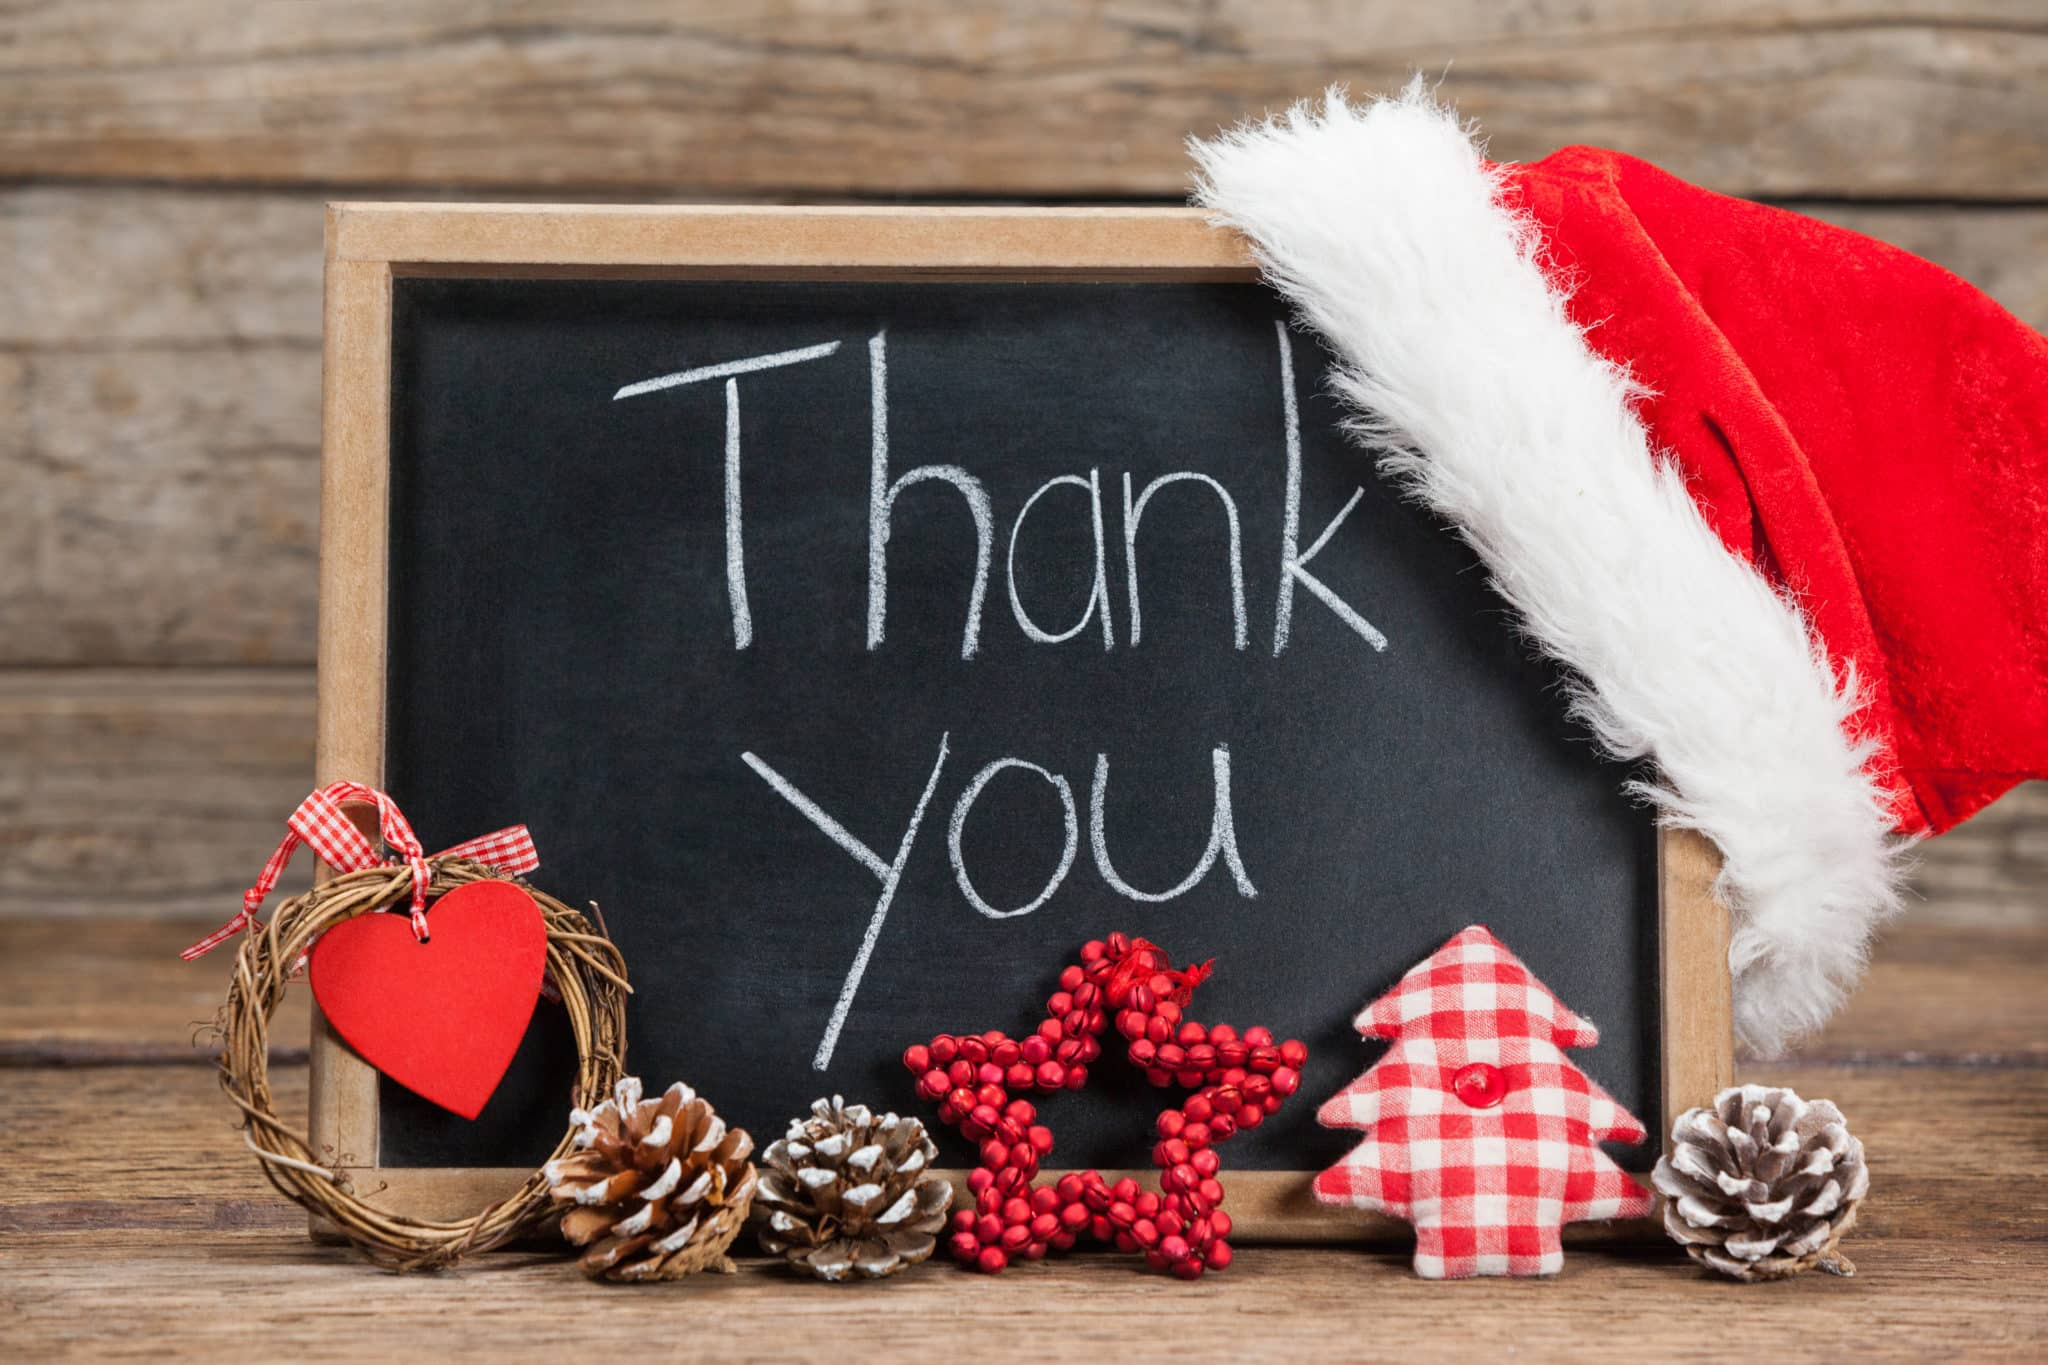 Thank You Gifts For Doctors The Most Simple And Memorable Gift Ideas